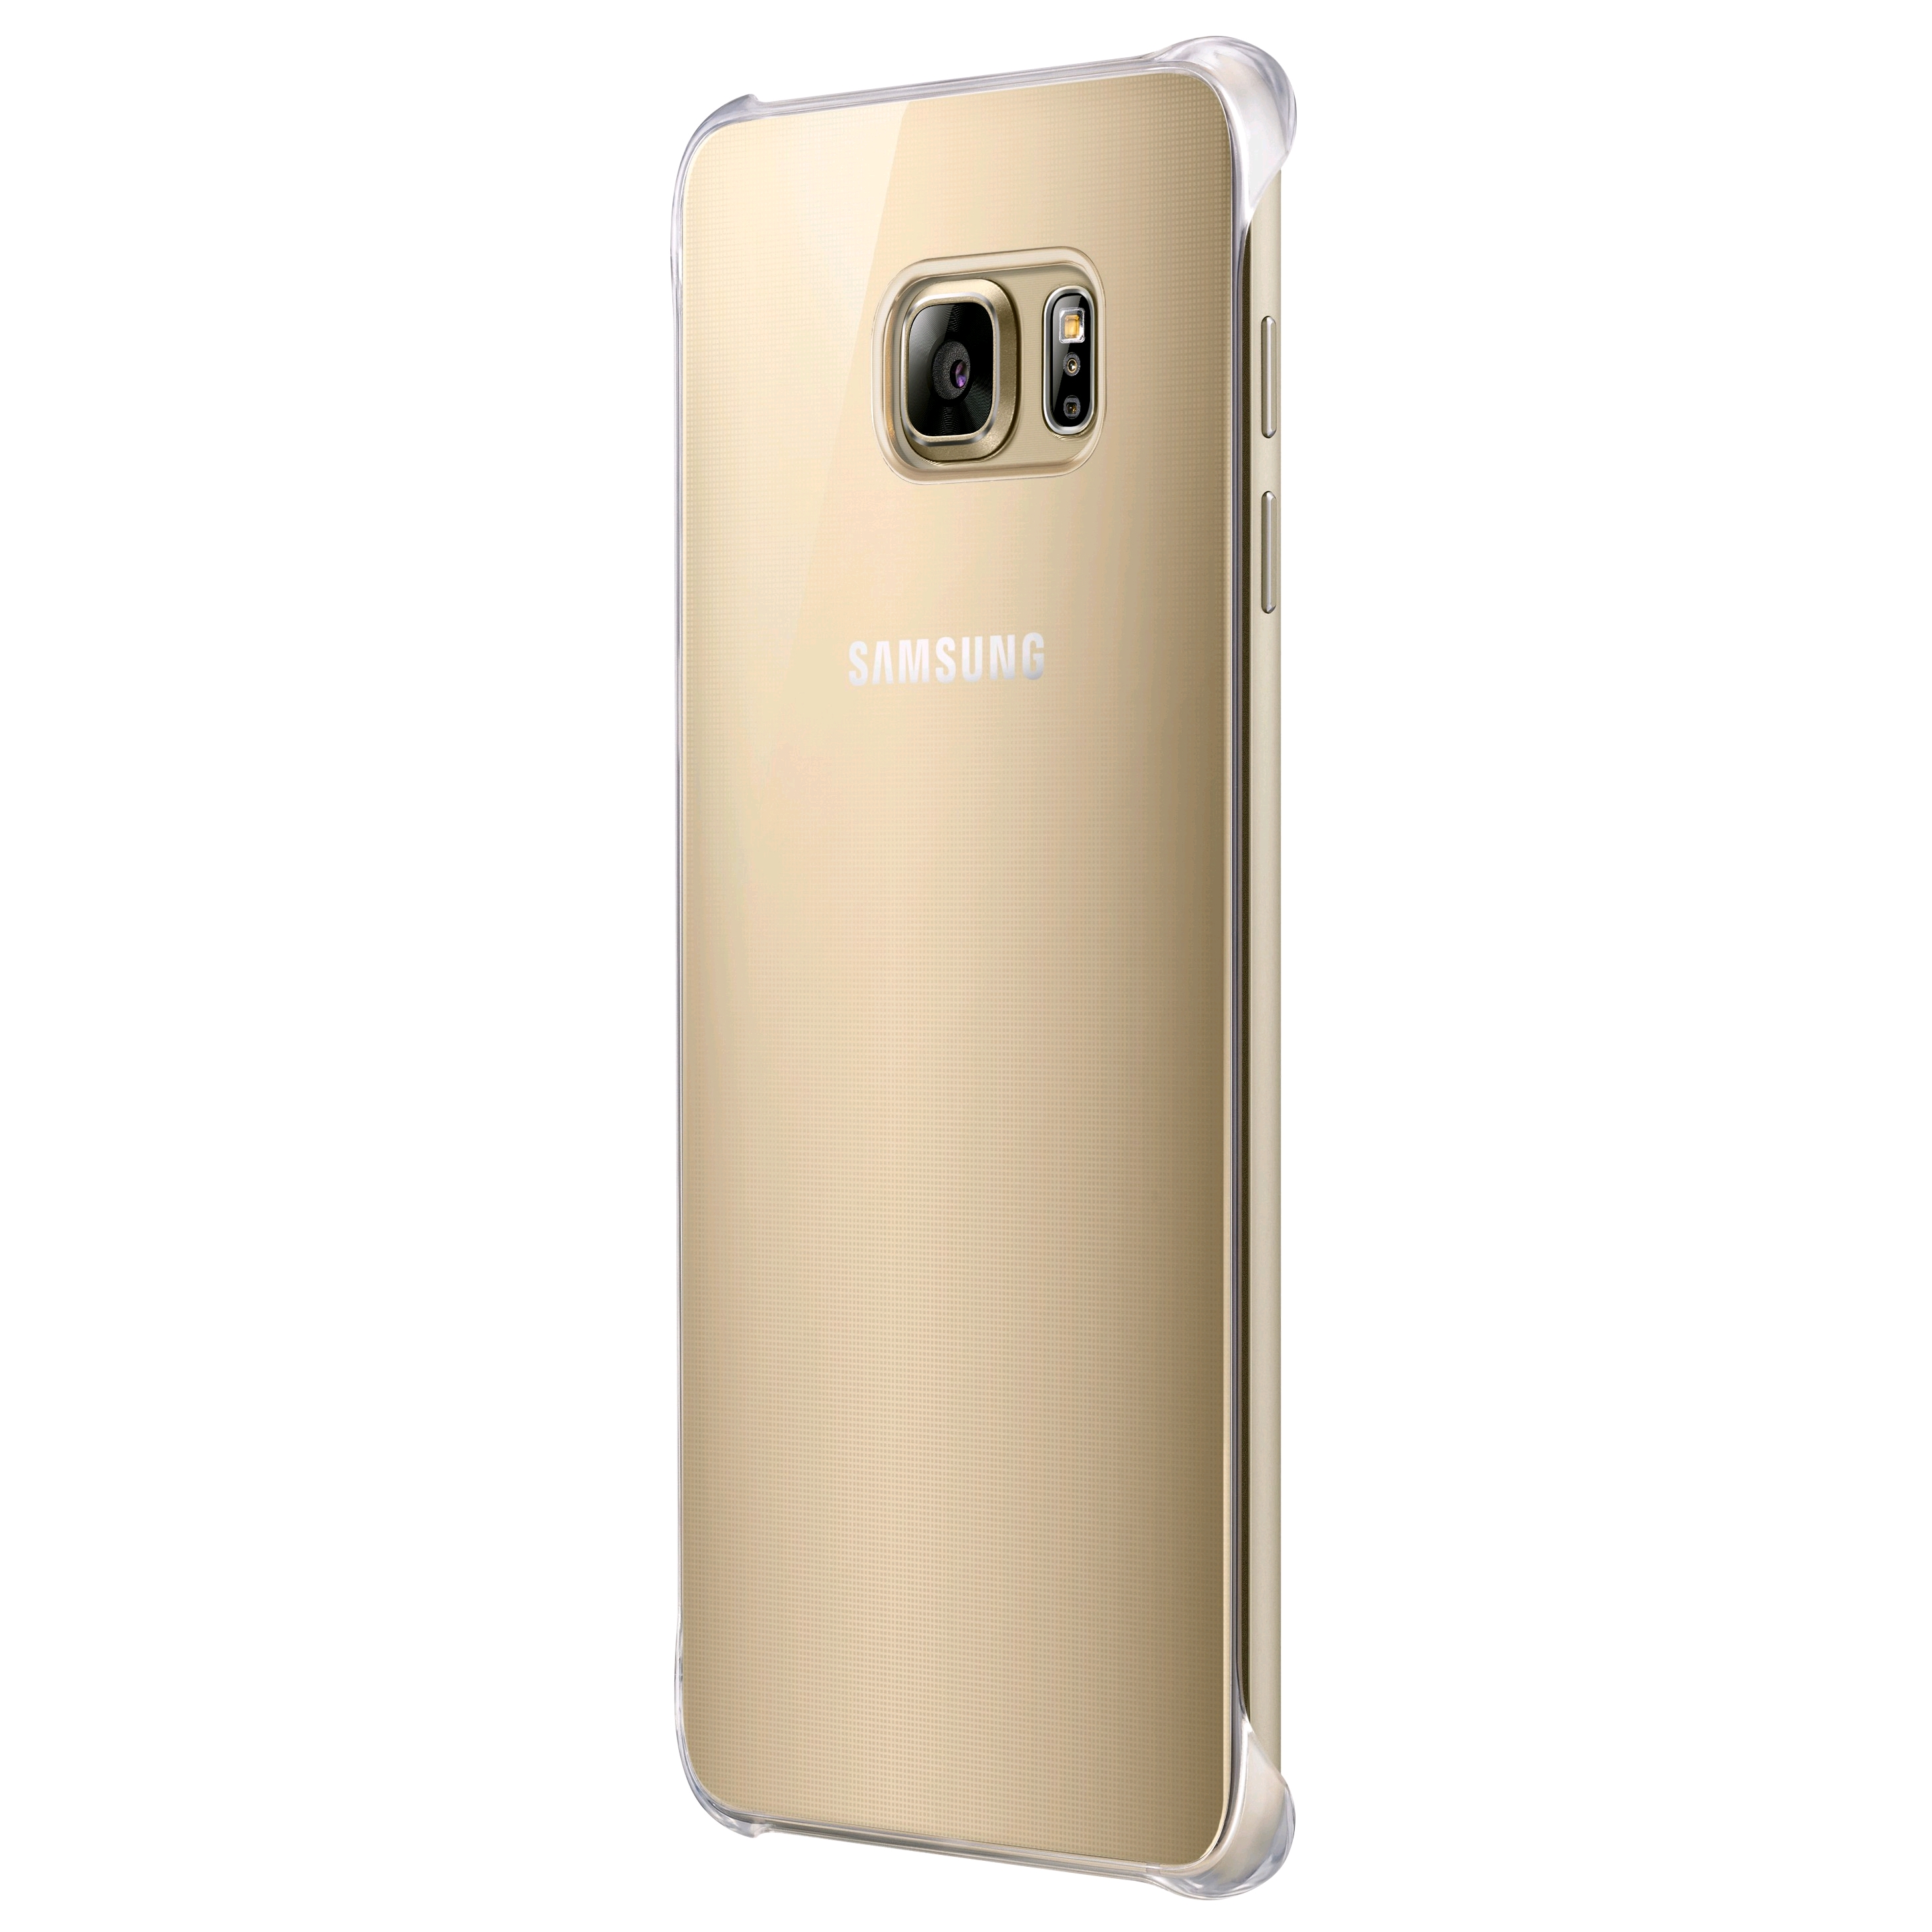 a95173c586f Samsung Glossy Cover for Samsung Galaxy S6 edge+ (Gold) - EXPANSYS Thailand